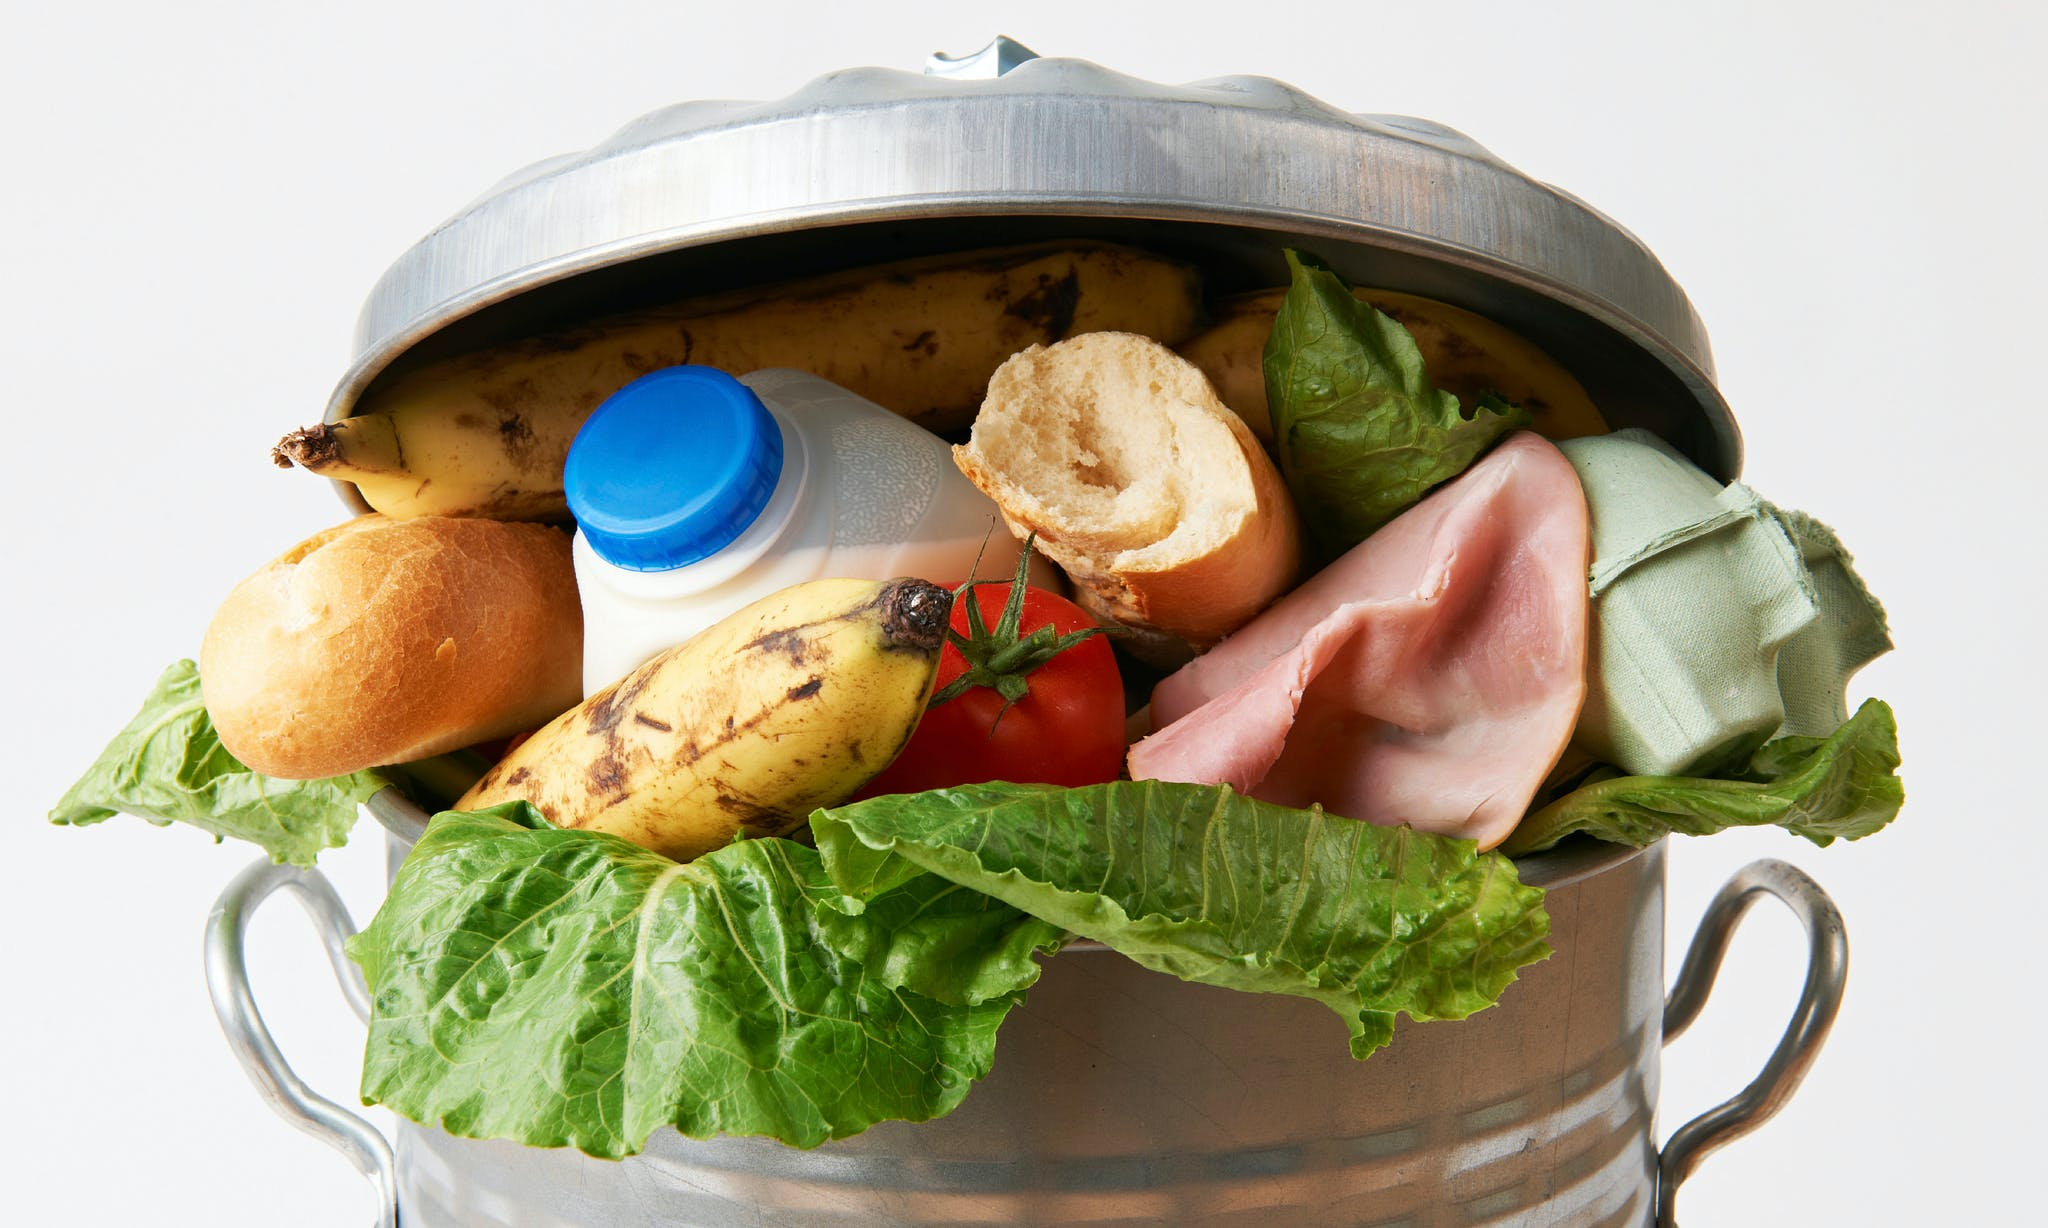 OPINION: Time for Taiwan to Get Serious About Reusing Its Food Waste